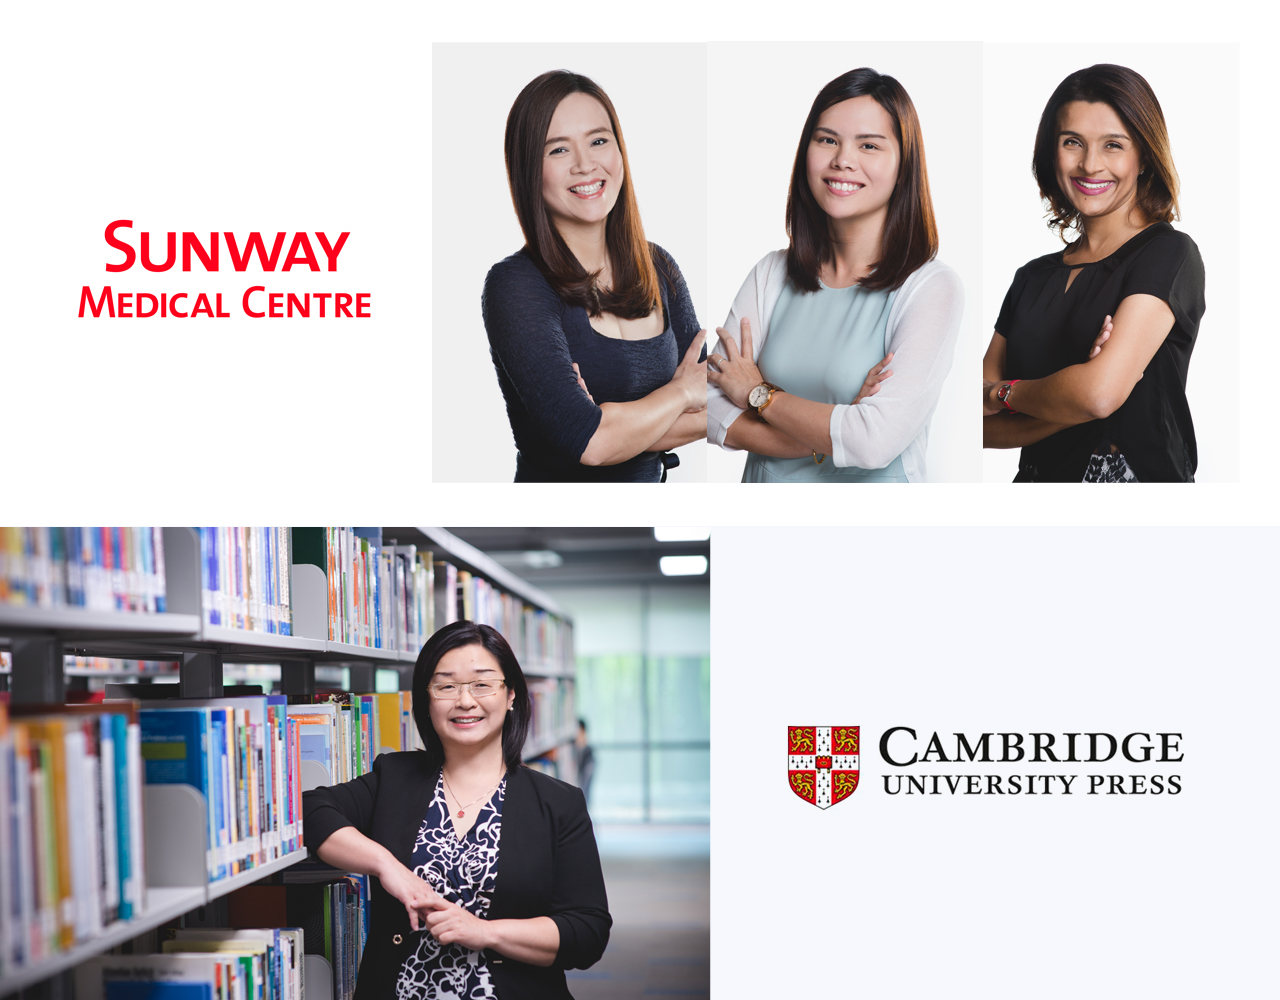 Corporate Portraits for Sunway Medical Centre and Cambridge University Press